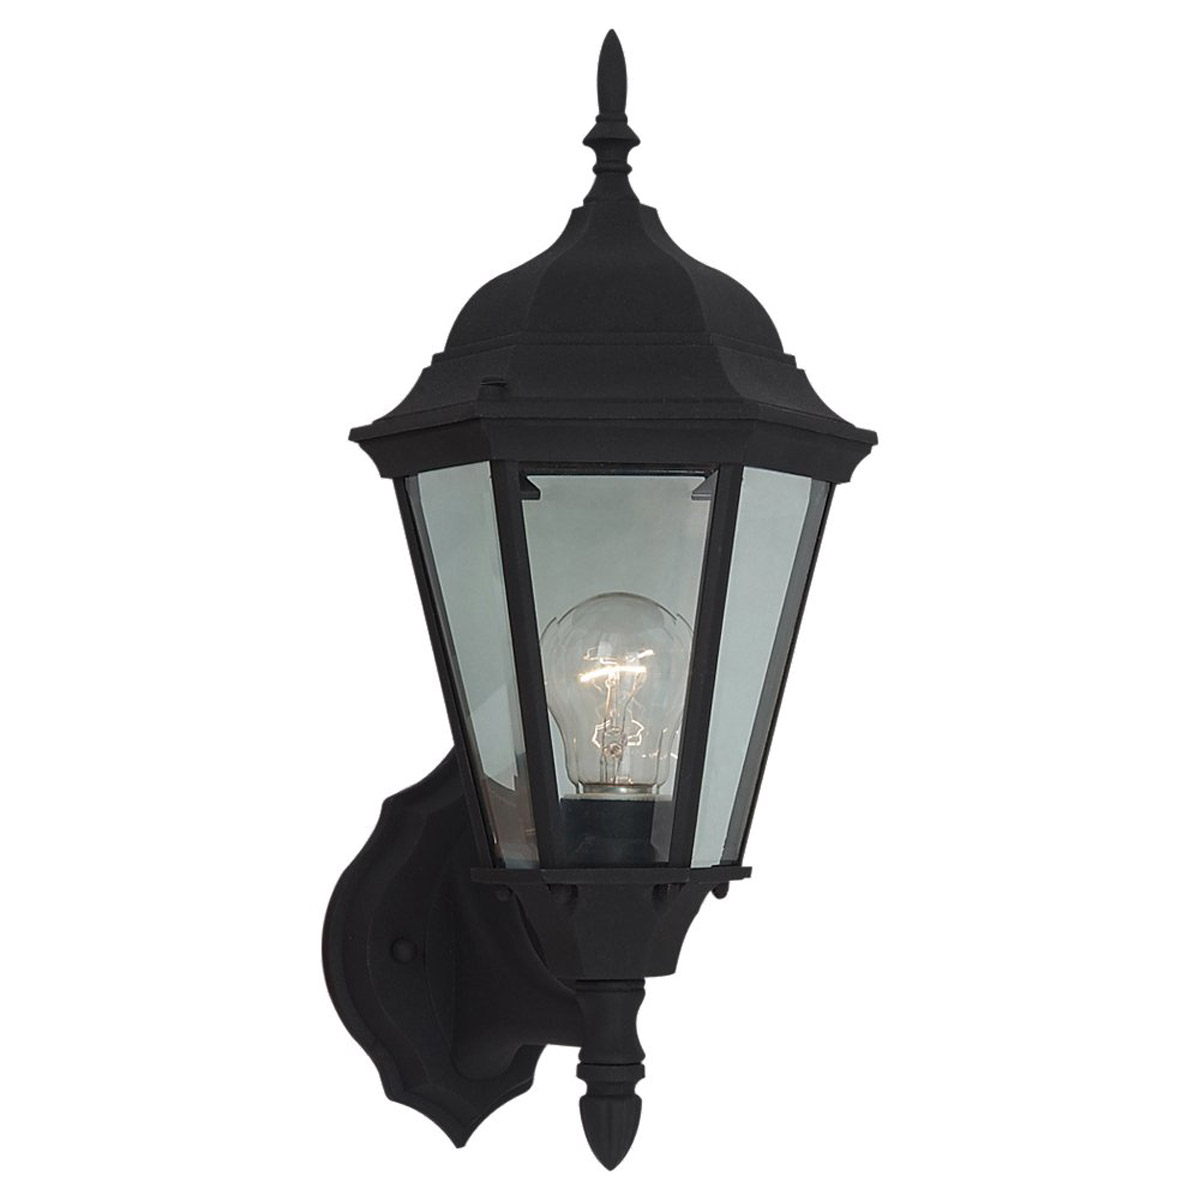 Sea Gull Lighting Bakersville 1 Light Outdoor Wall Lantern in Black 88941-12 photo